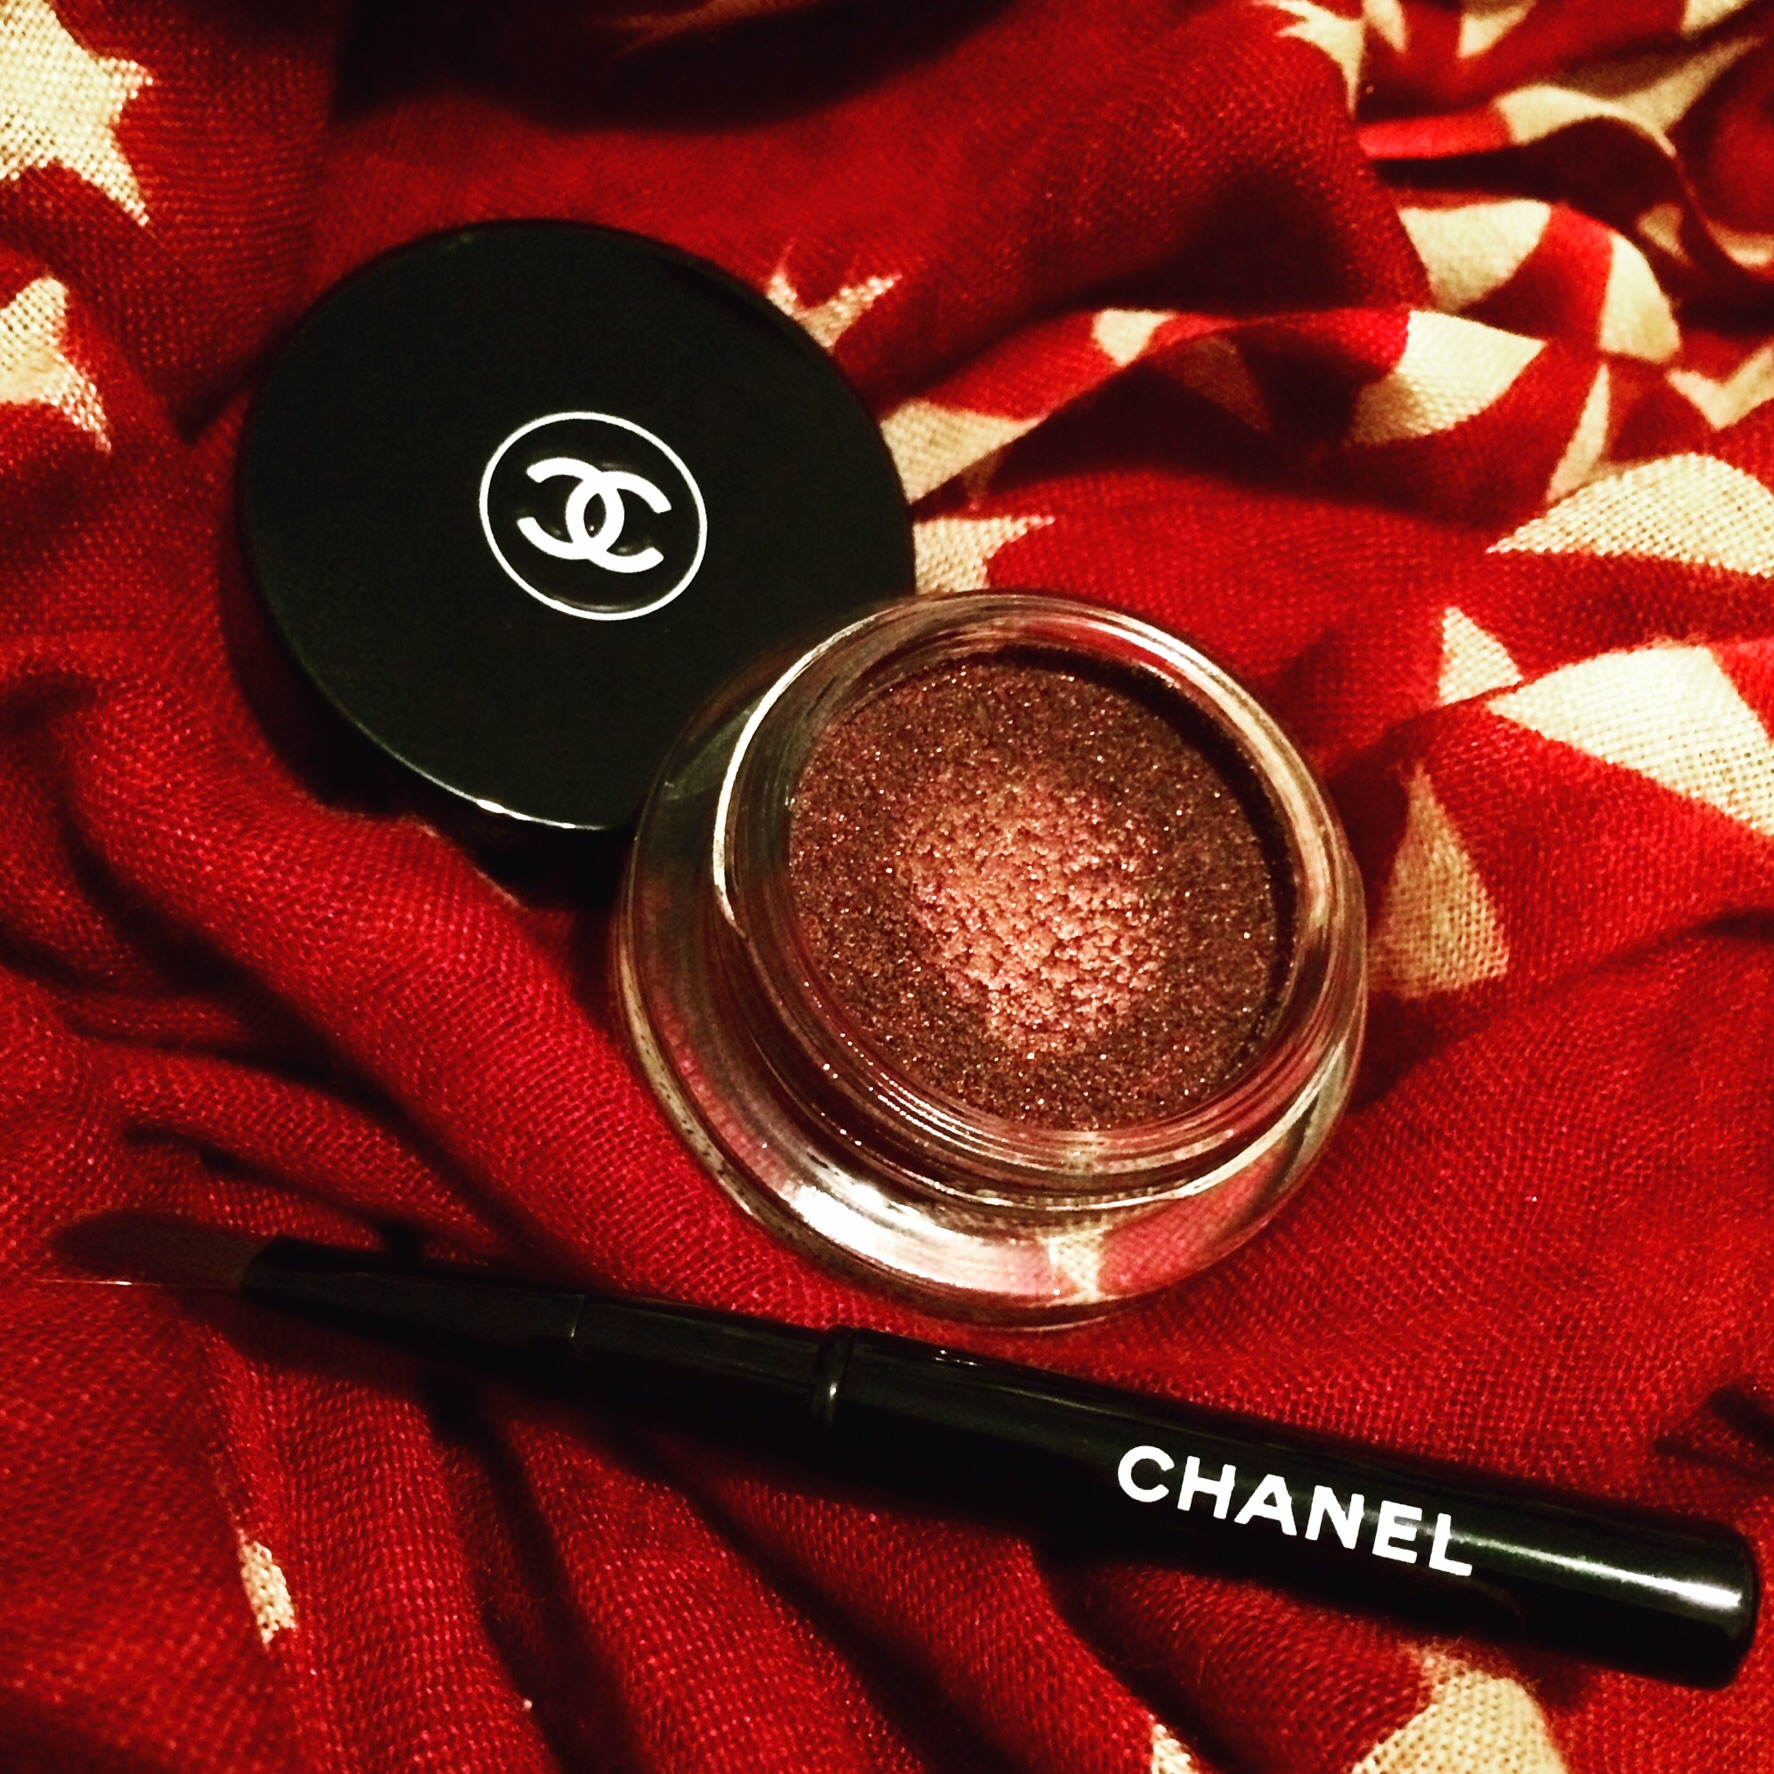 Chanel Illusion D'Ombre in Rouge Noir